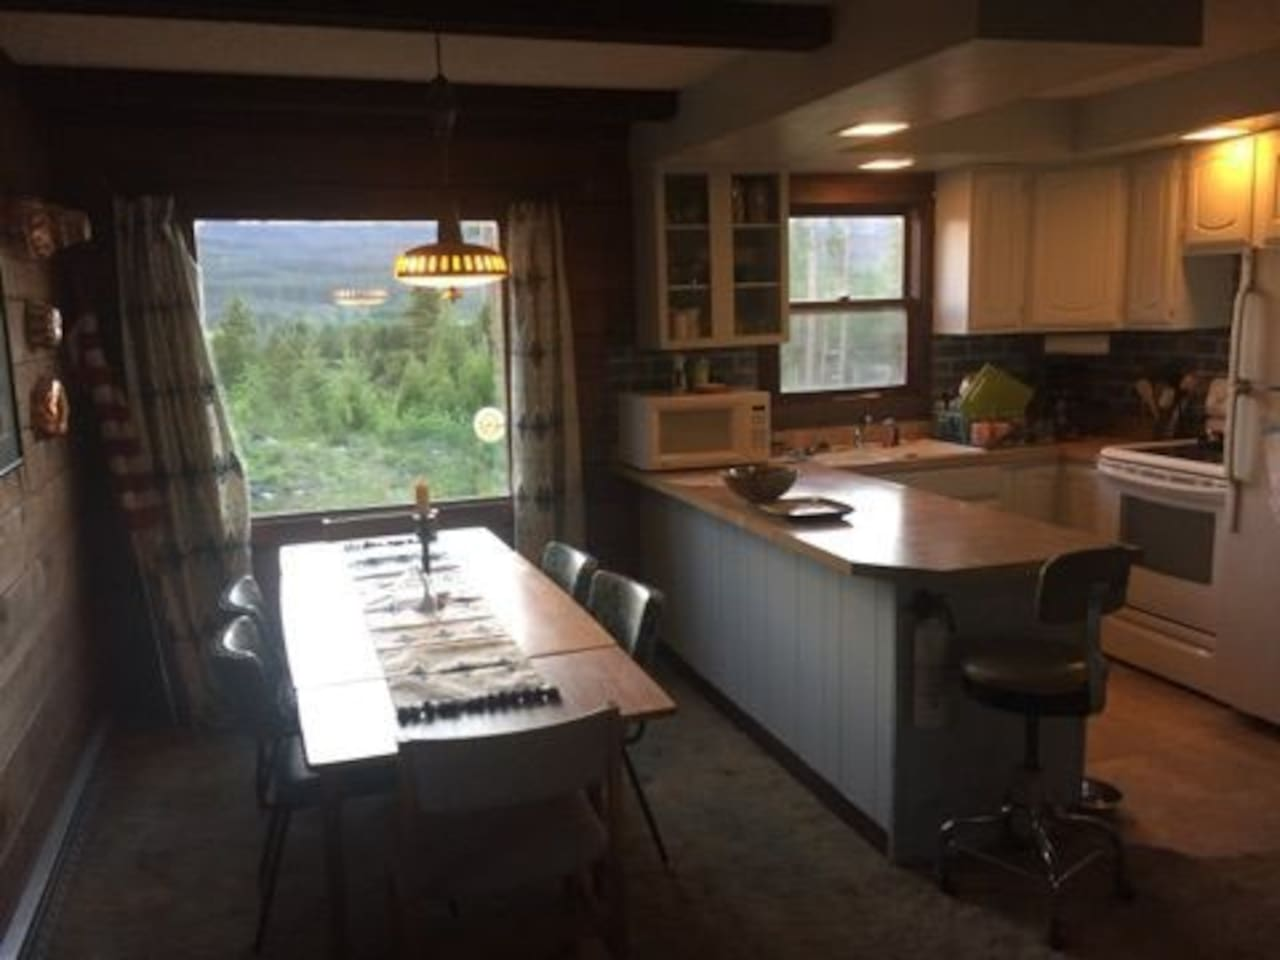 Grand designs angela started building her hut in the garage at home - Retro Relaxo Cabin Houses For Rent In Grand Lake Colorado United States